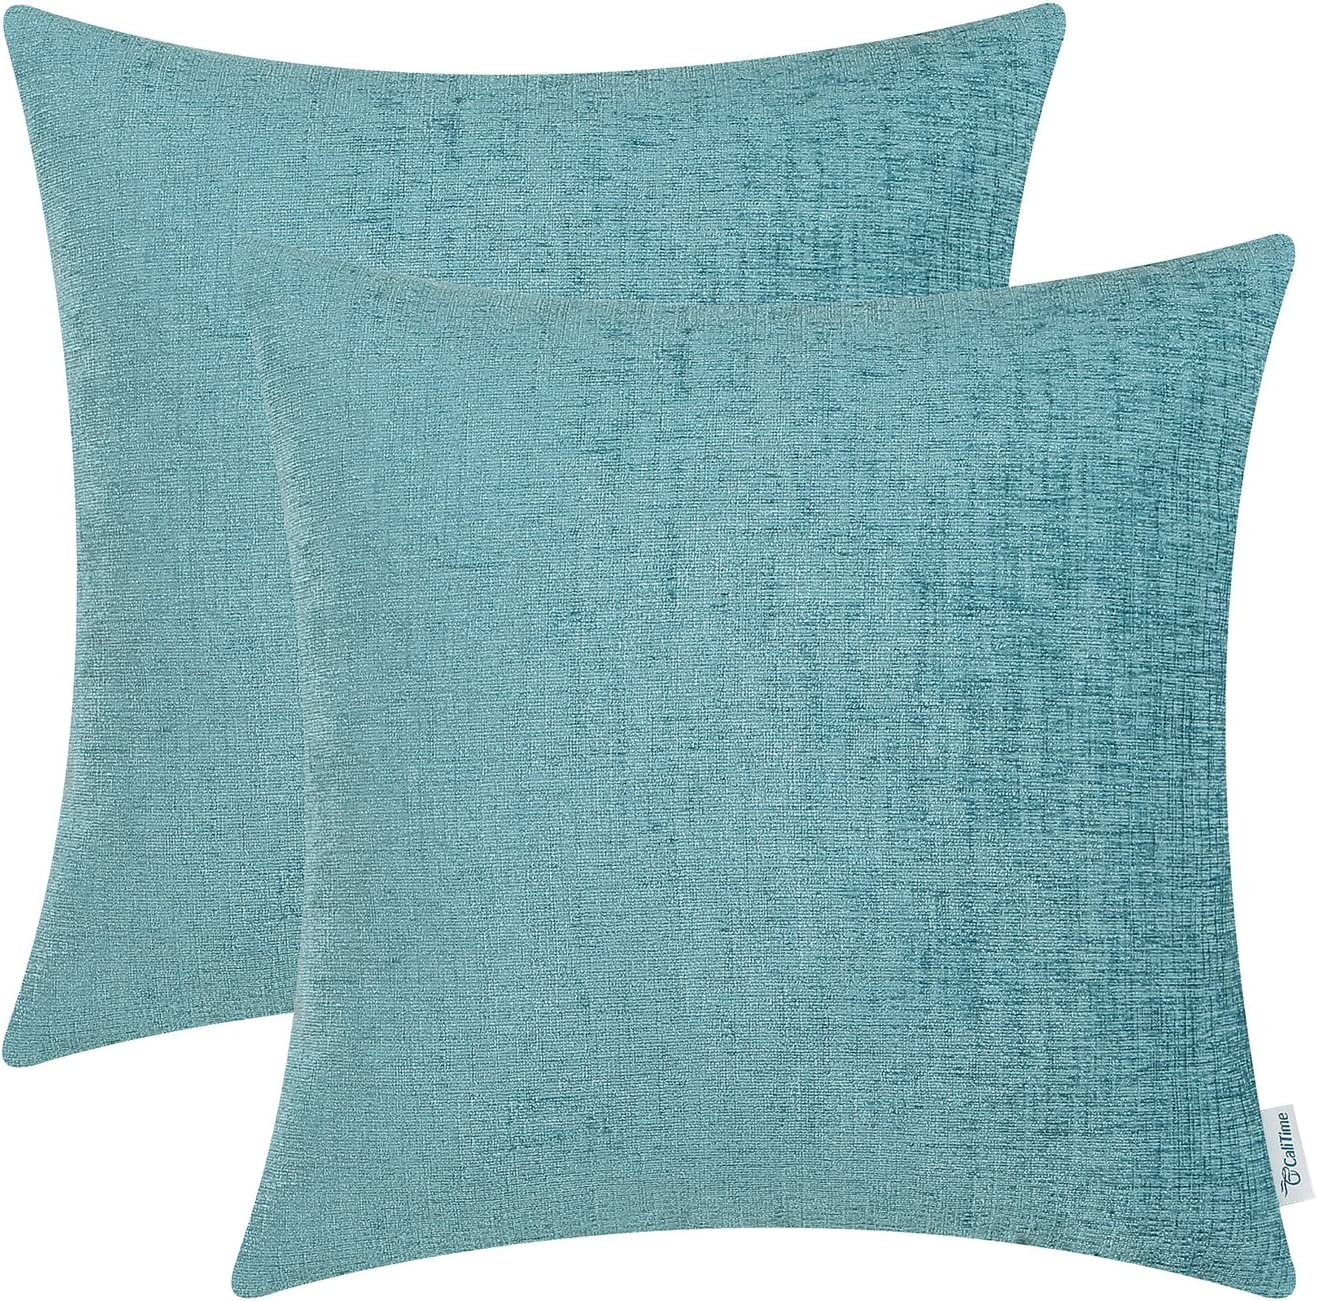 CaliTime Pack of 2 Cozy Throw Pillow Covers Cases for Couch Sofa Home Decoration Solid Dyed Soft Chenille 22 X 22 Inches Teal